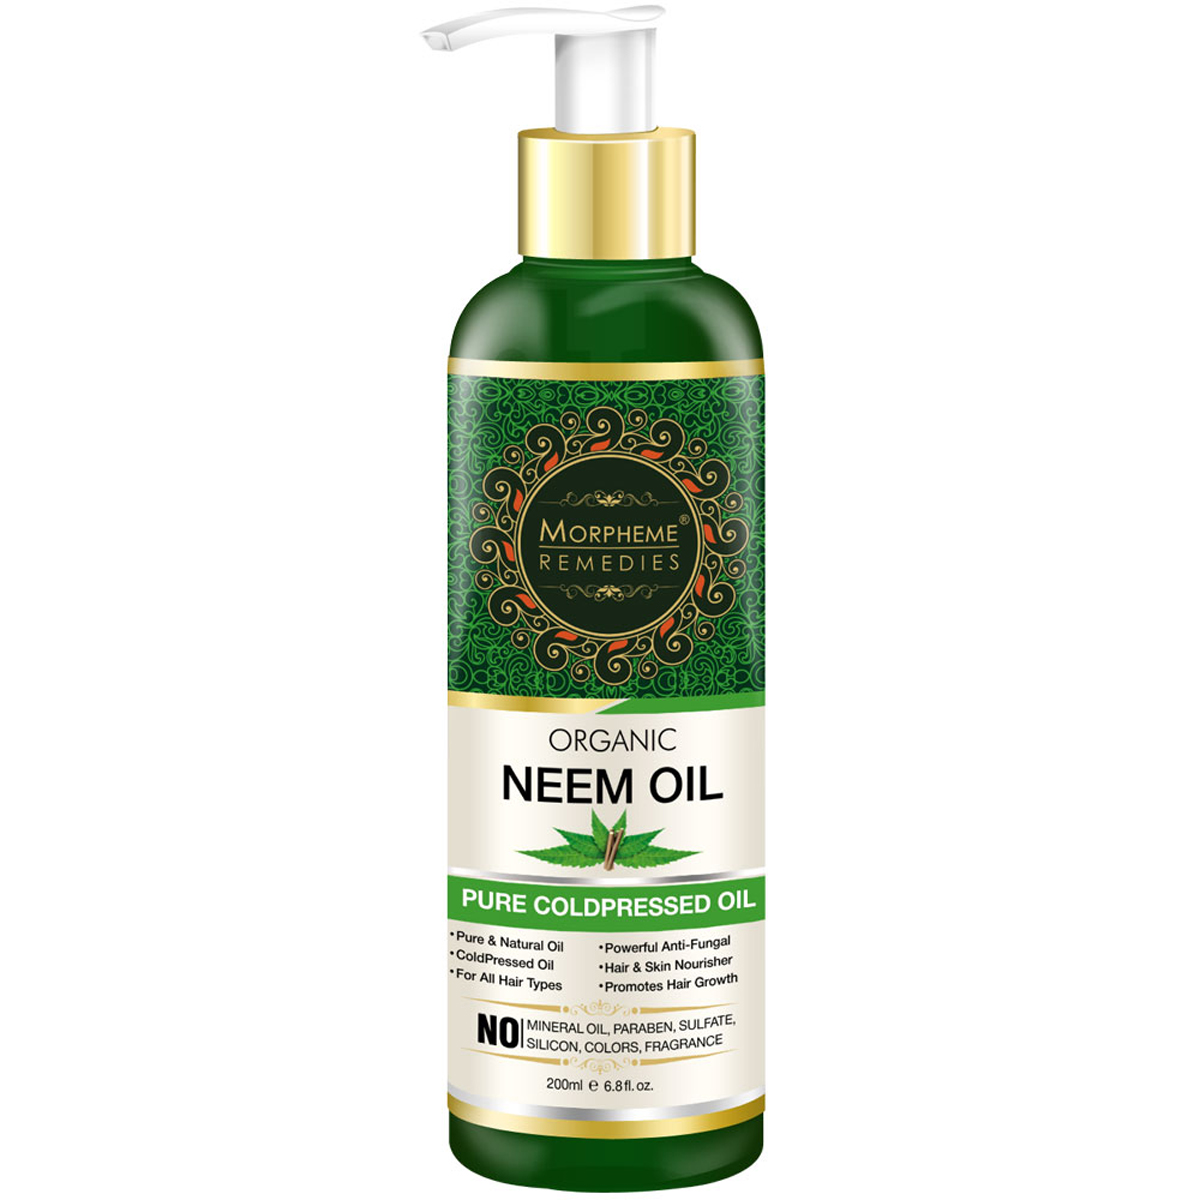 Morpheme Pure Organic Neem Oil Natural Home Remedies